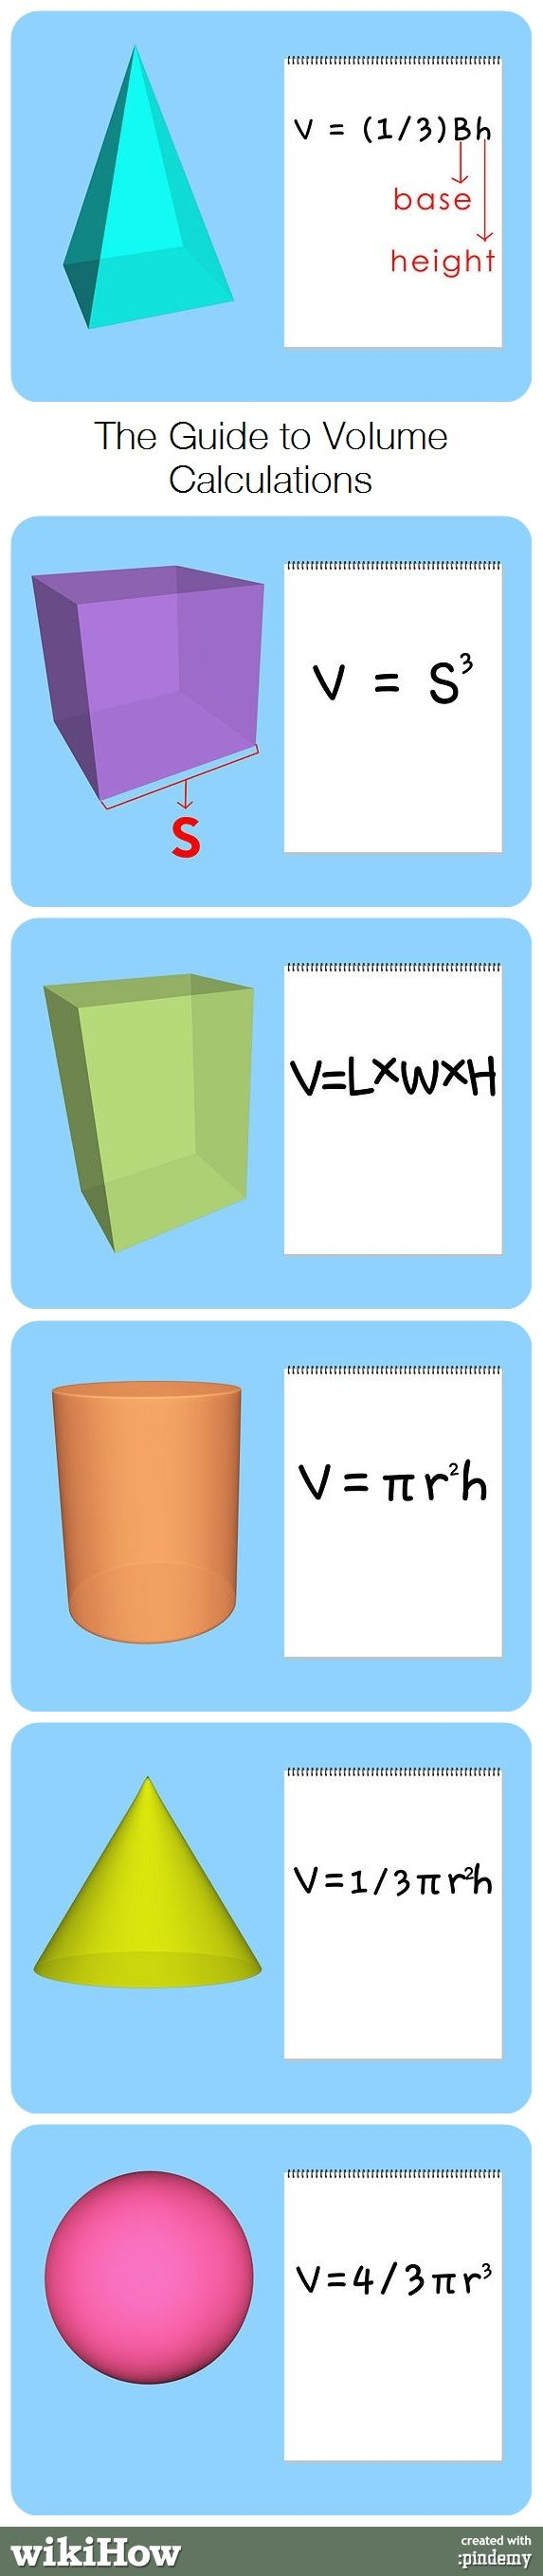 The Guide to Calculate Volume, from wikiHow